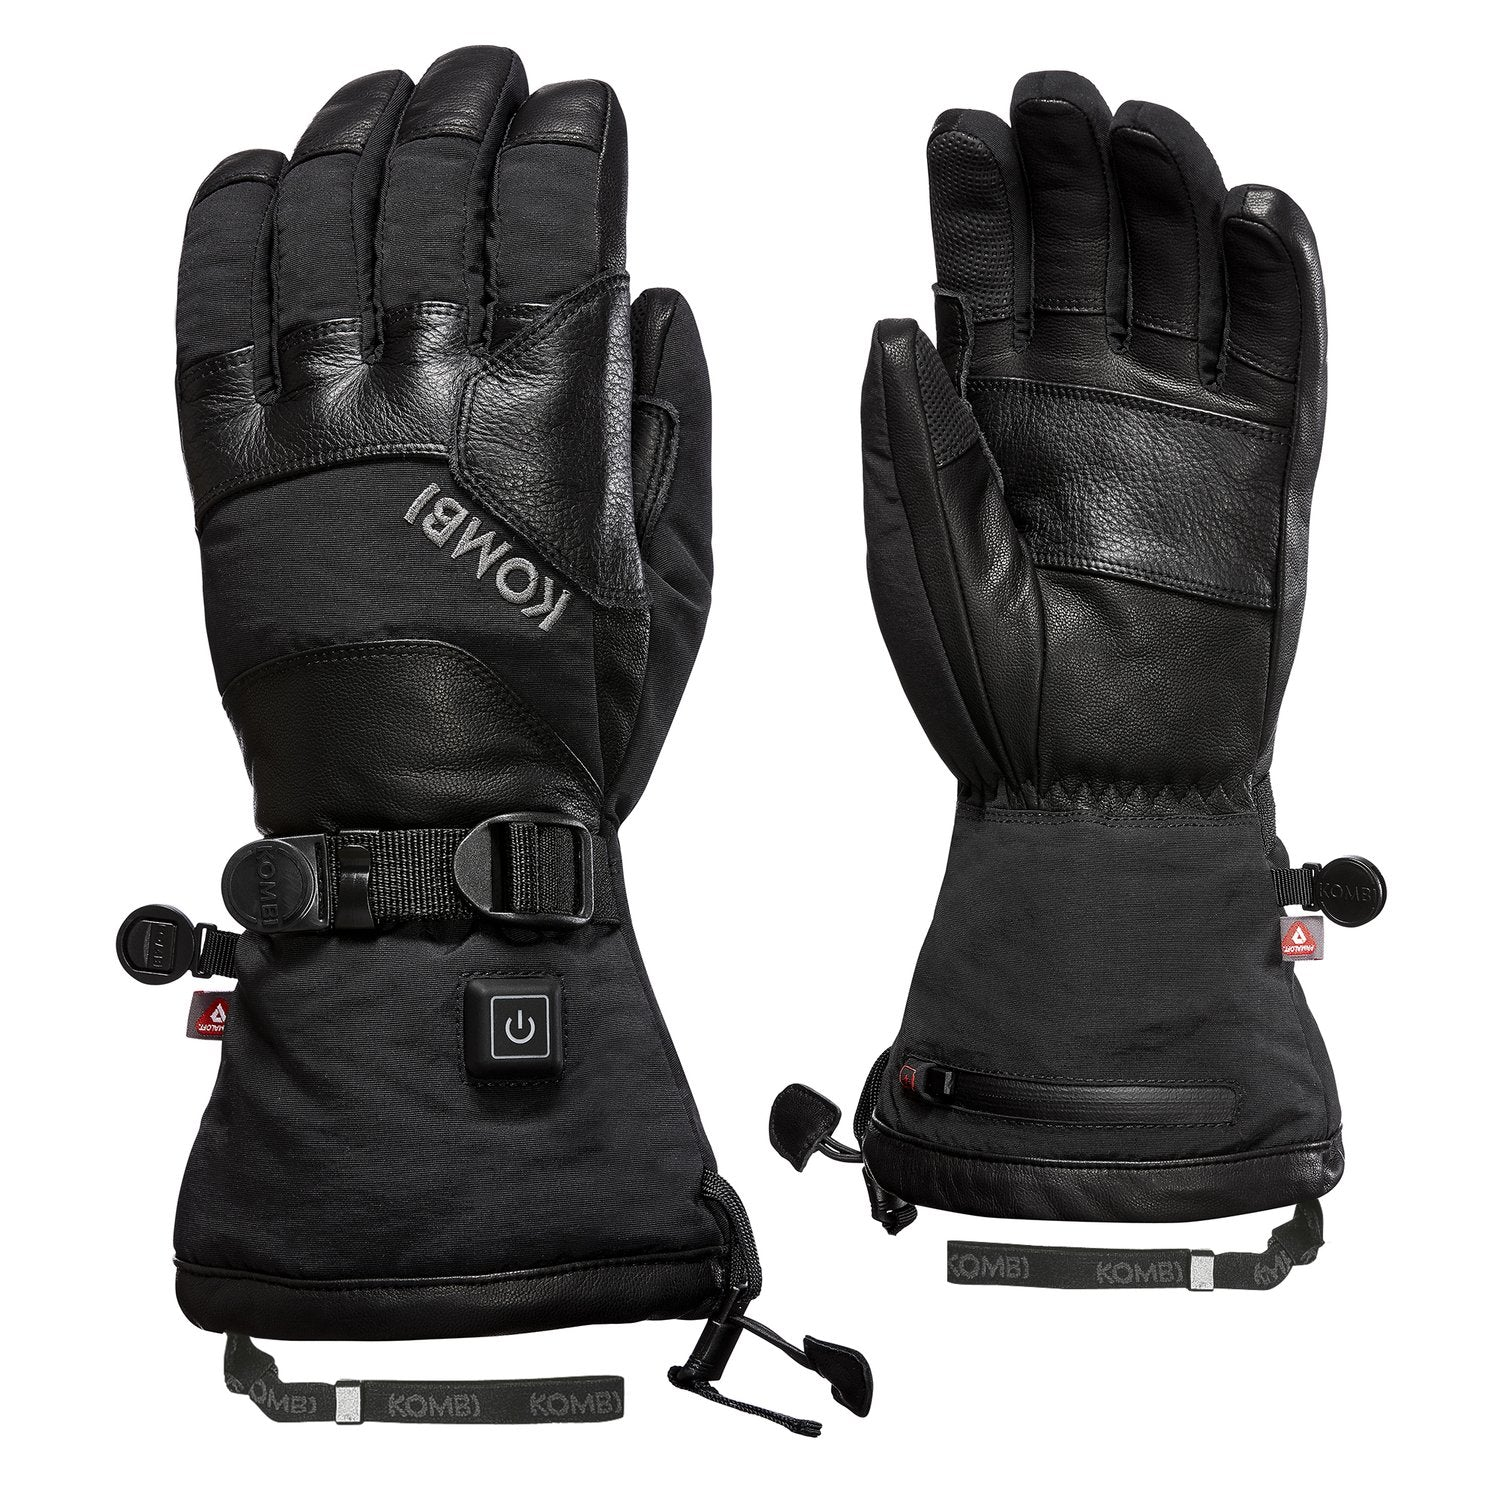 Kombi The Warm-Up Glove - Unisex